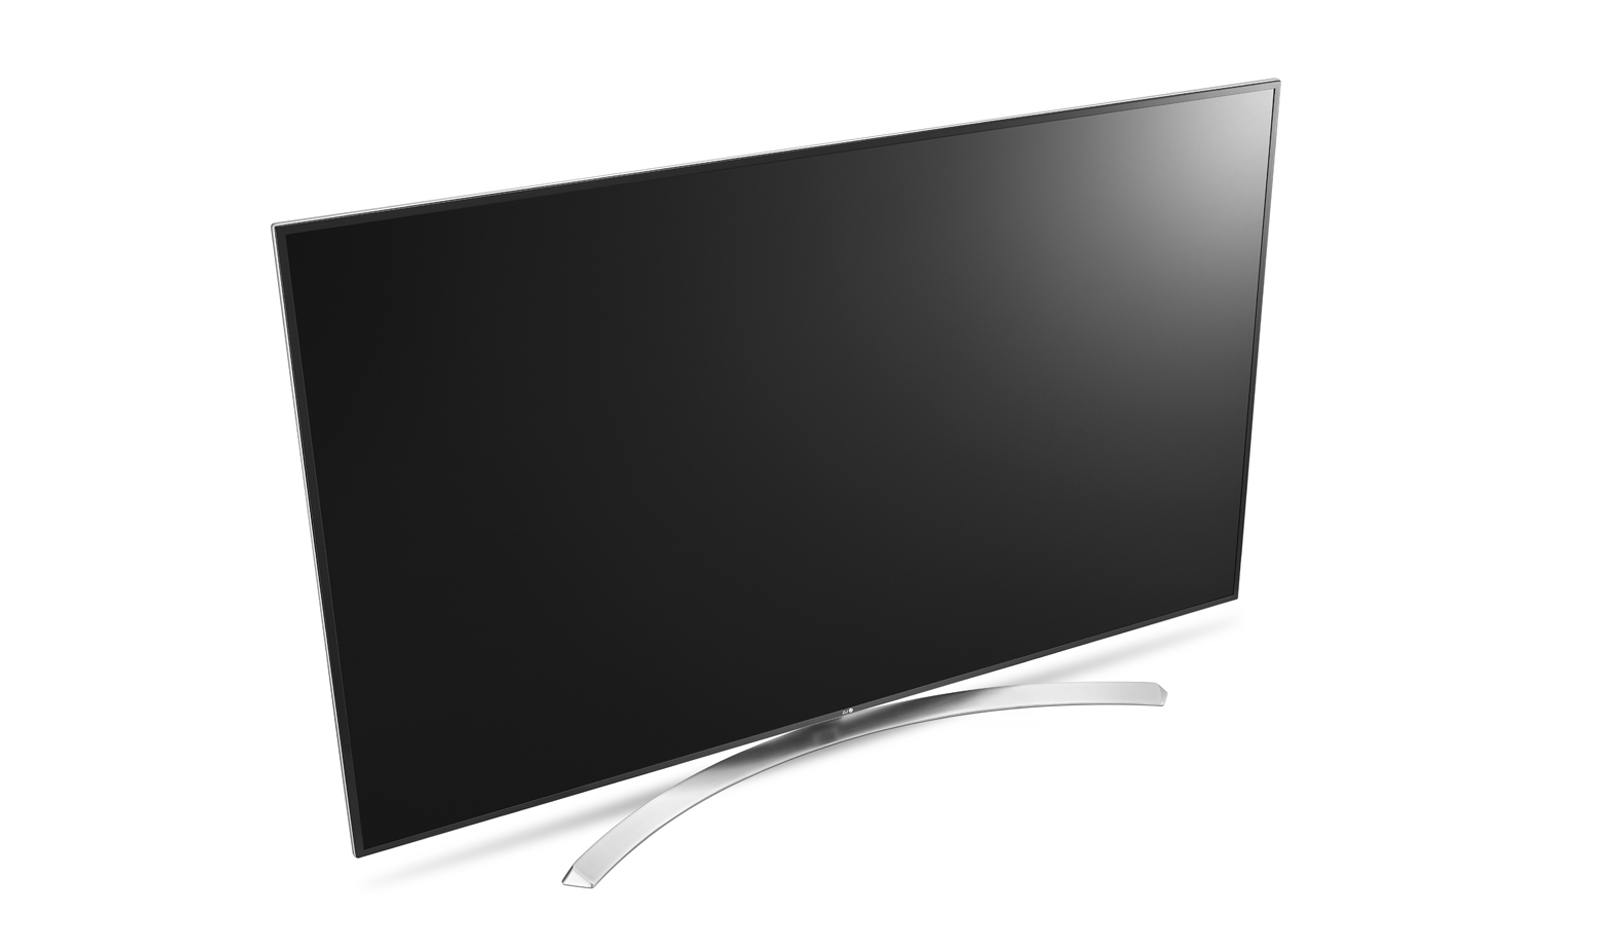 75 Inch Super Uhd Tv | Lg 75Uh855V | Lg Uk Pertaining To Dixon White 65 Inch Tv Stands (View 1 of 20)